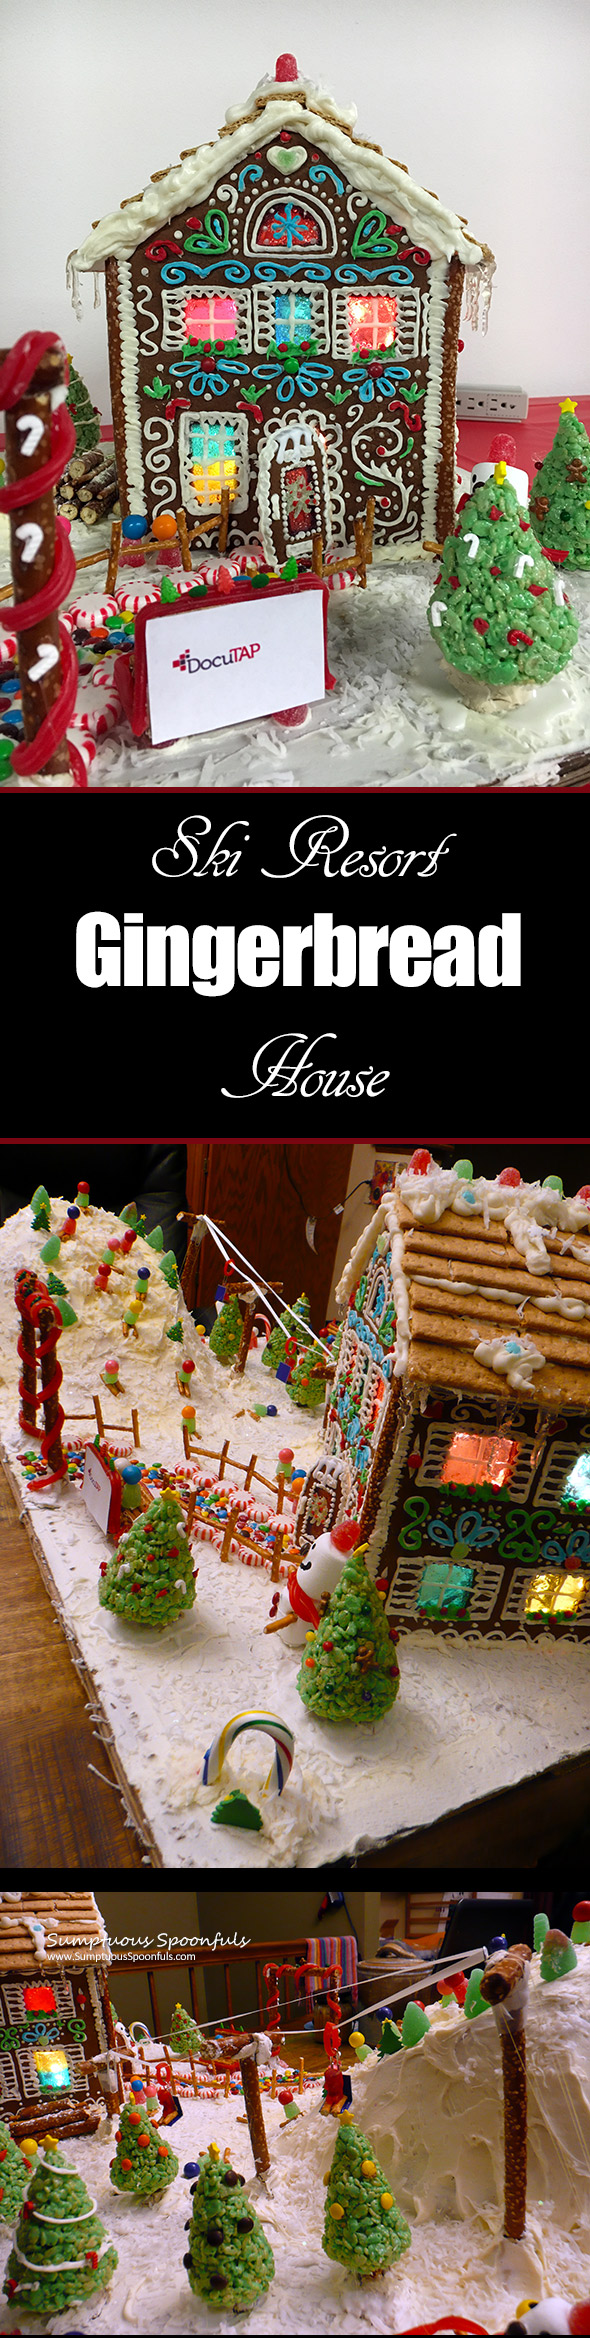 Ski Resort Gingerbread House ~ Sumptuous Spoonfuls gingerbread house journey